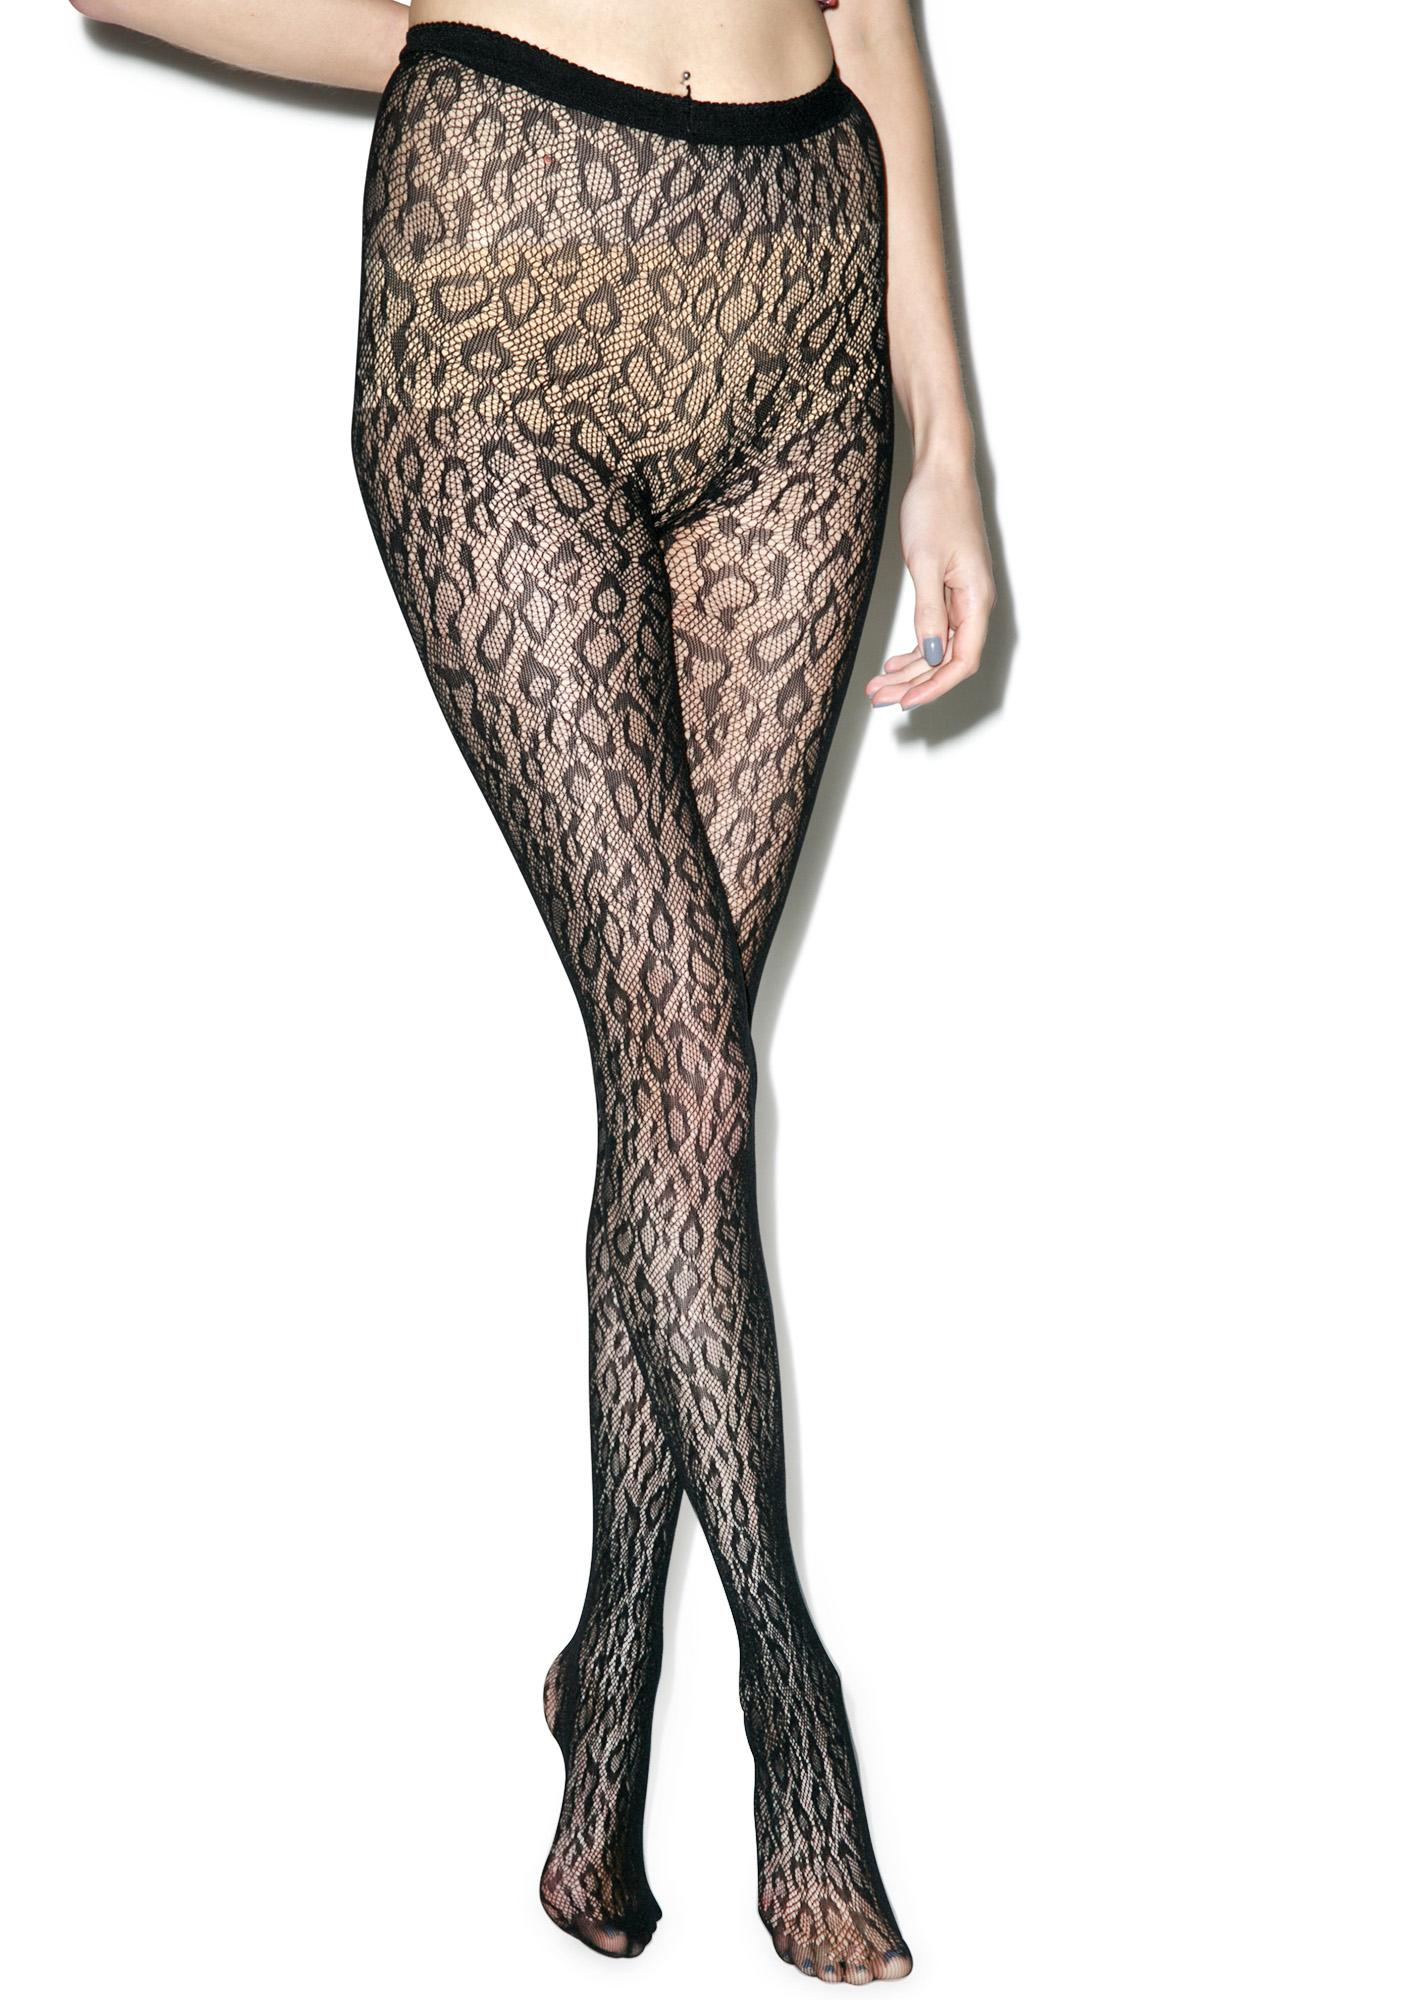 Lip Service Wild Side Tights